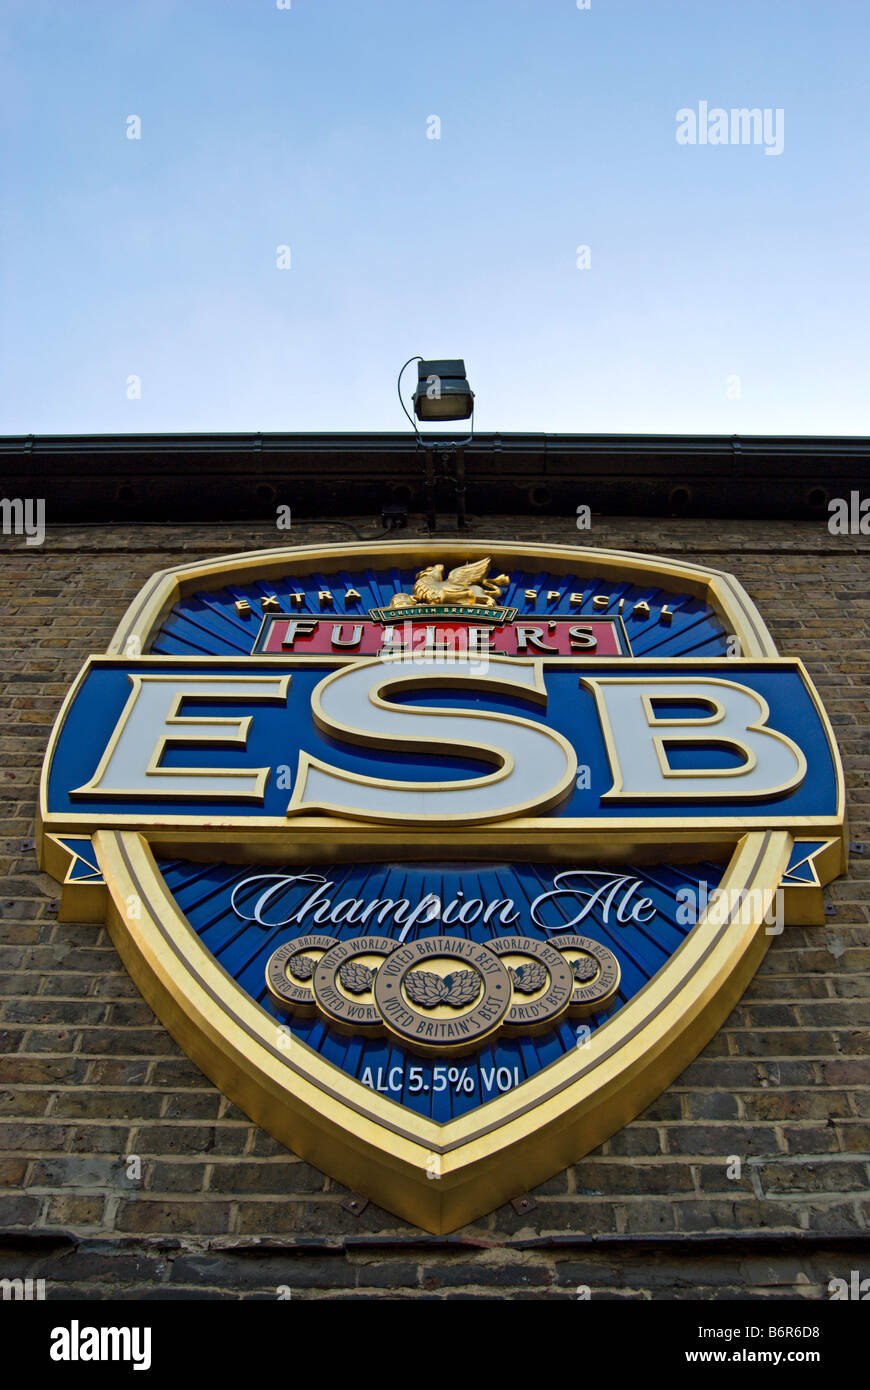 esb, or extra special bitter, logo on the wall of fuller's griffin brewery, chiswick, west london, england - Stock Image